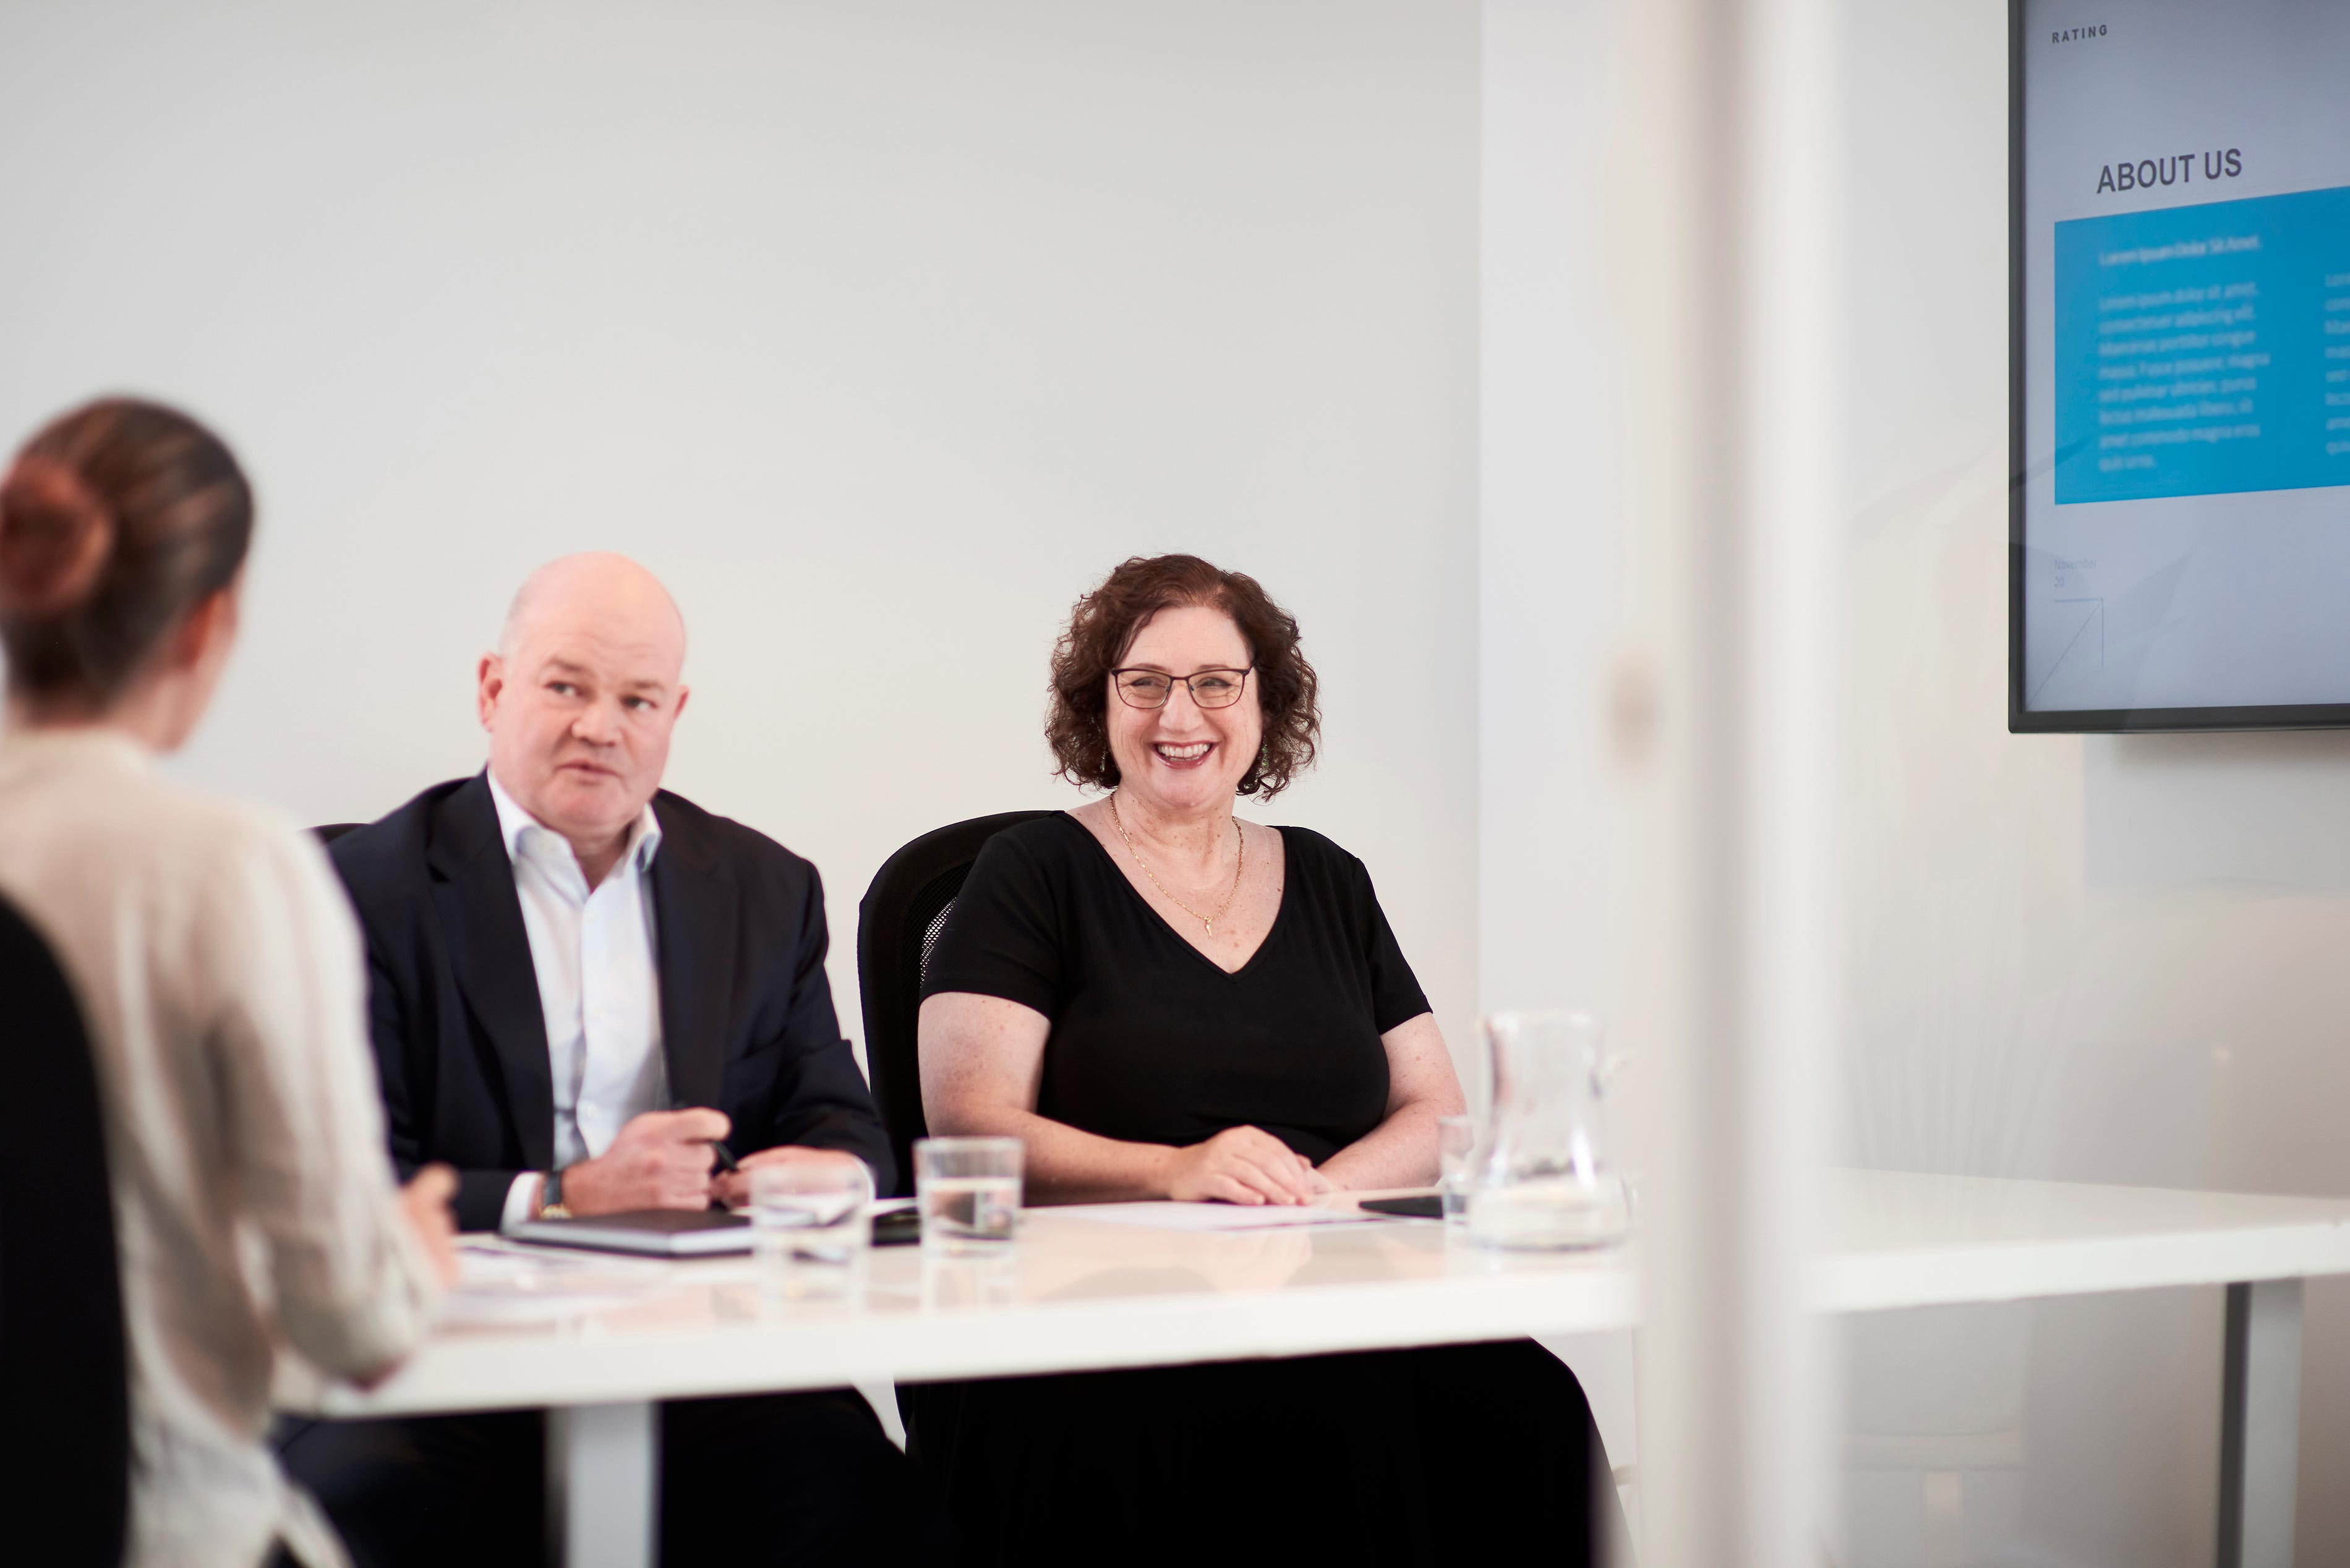 Image of David and Nadia Moffatt, owners of BONROS, while sitting in a meeting.